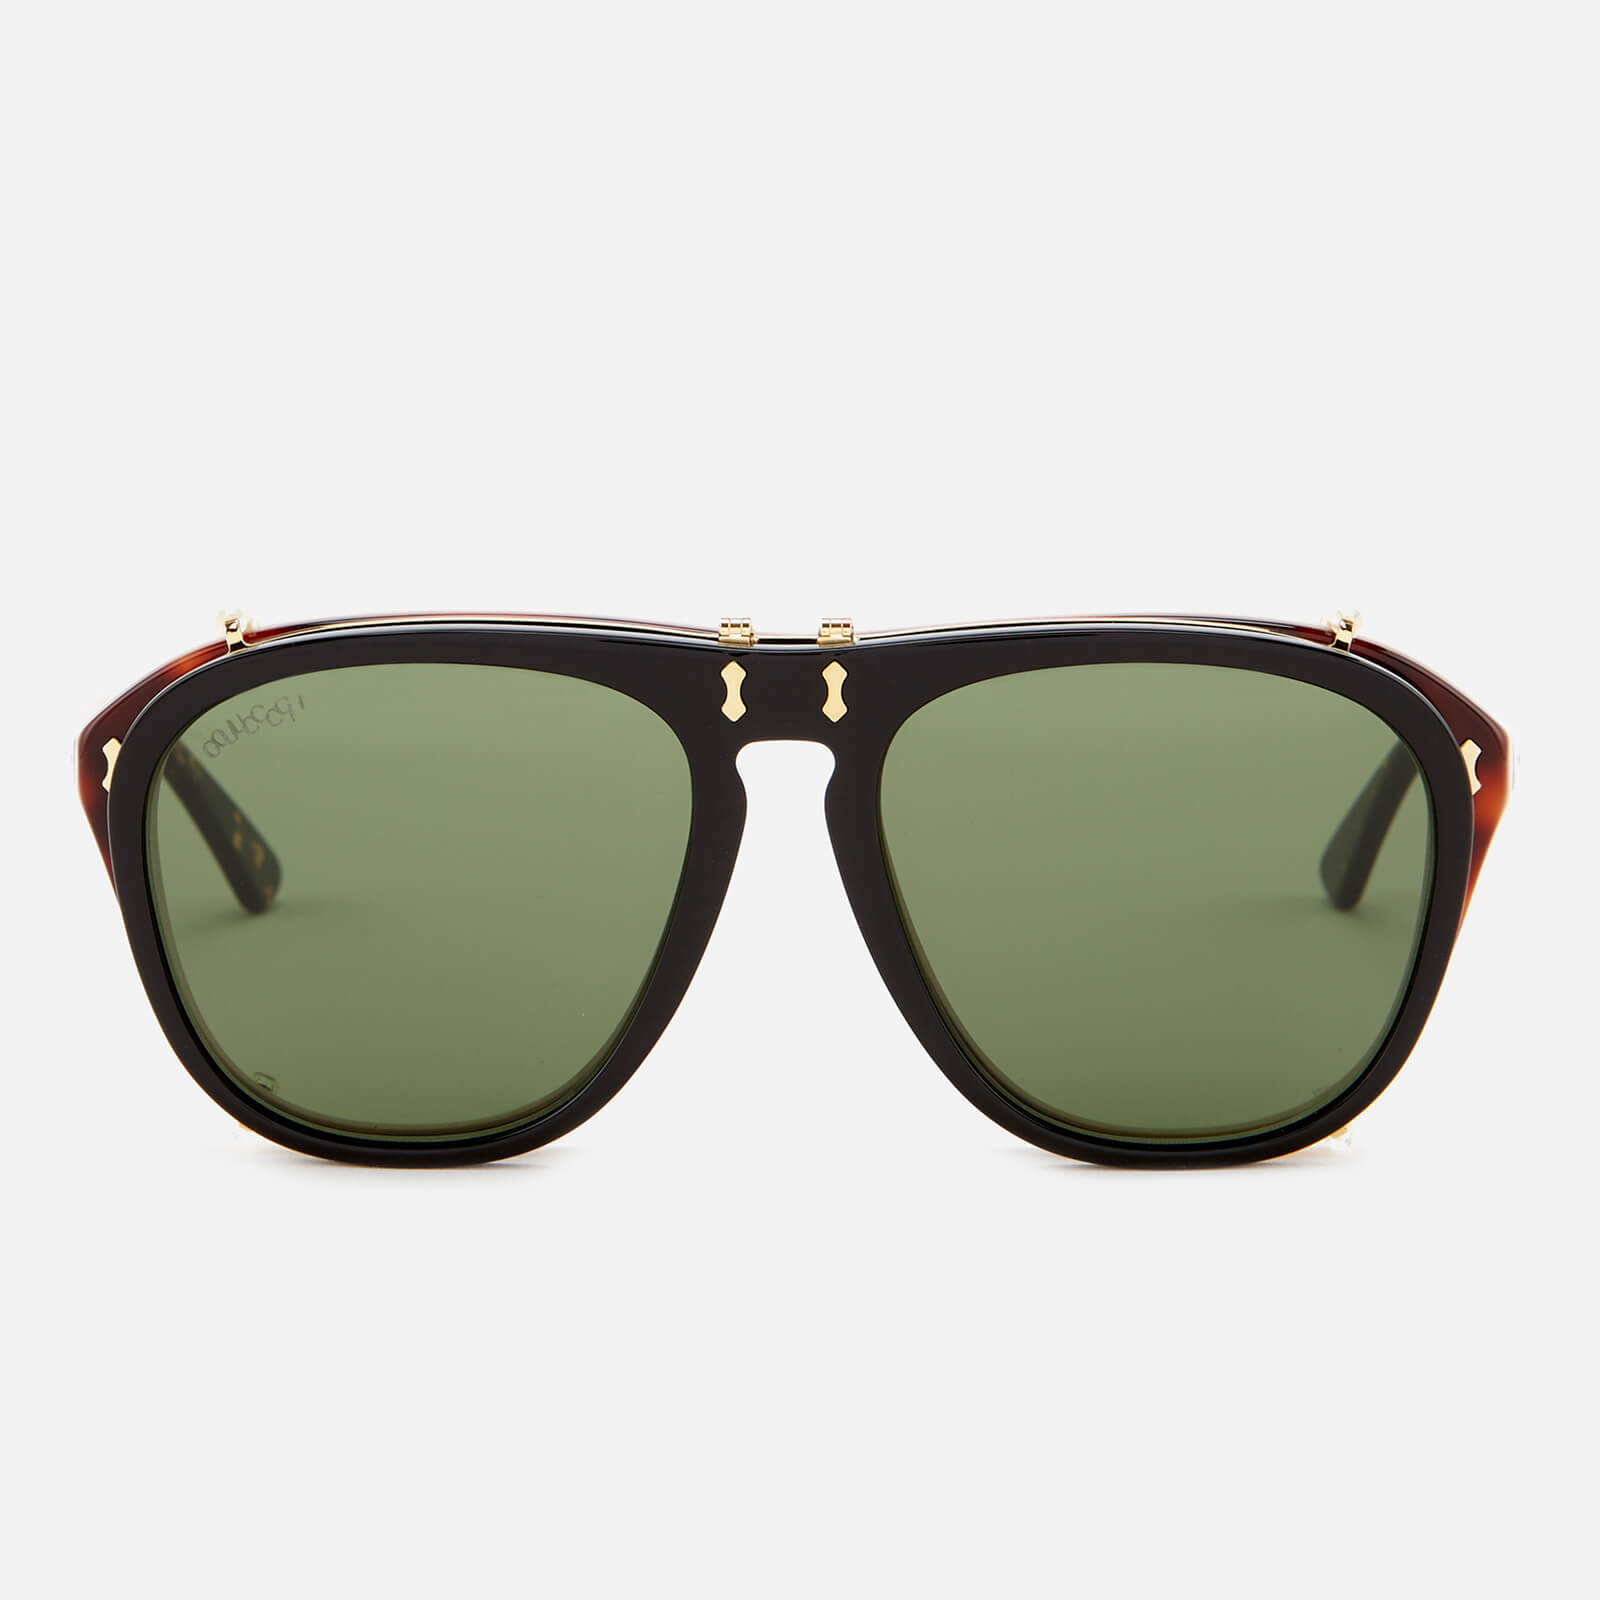 c532316ef0 Gucci Men s Aviator Sunglasses - Green Brown - Free UK Delivery over £50